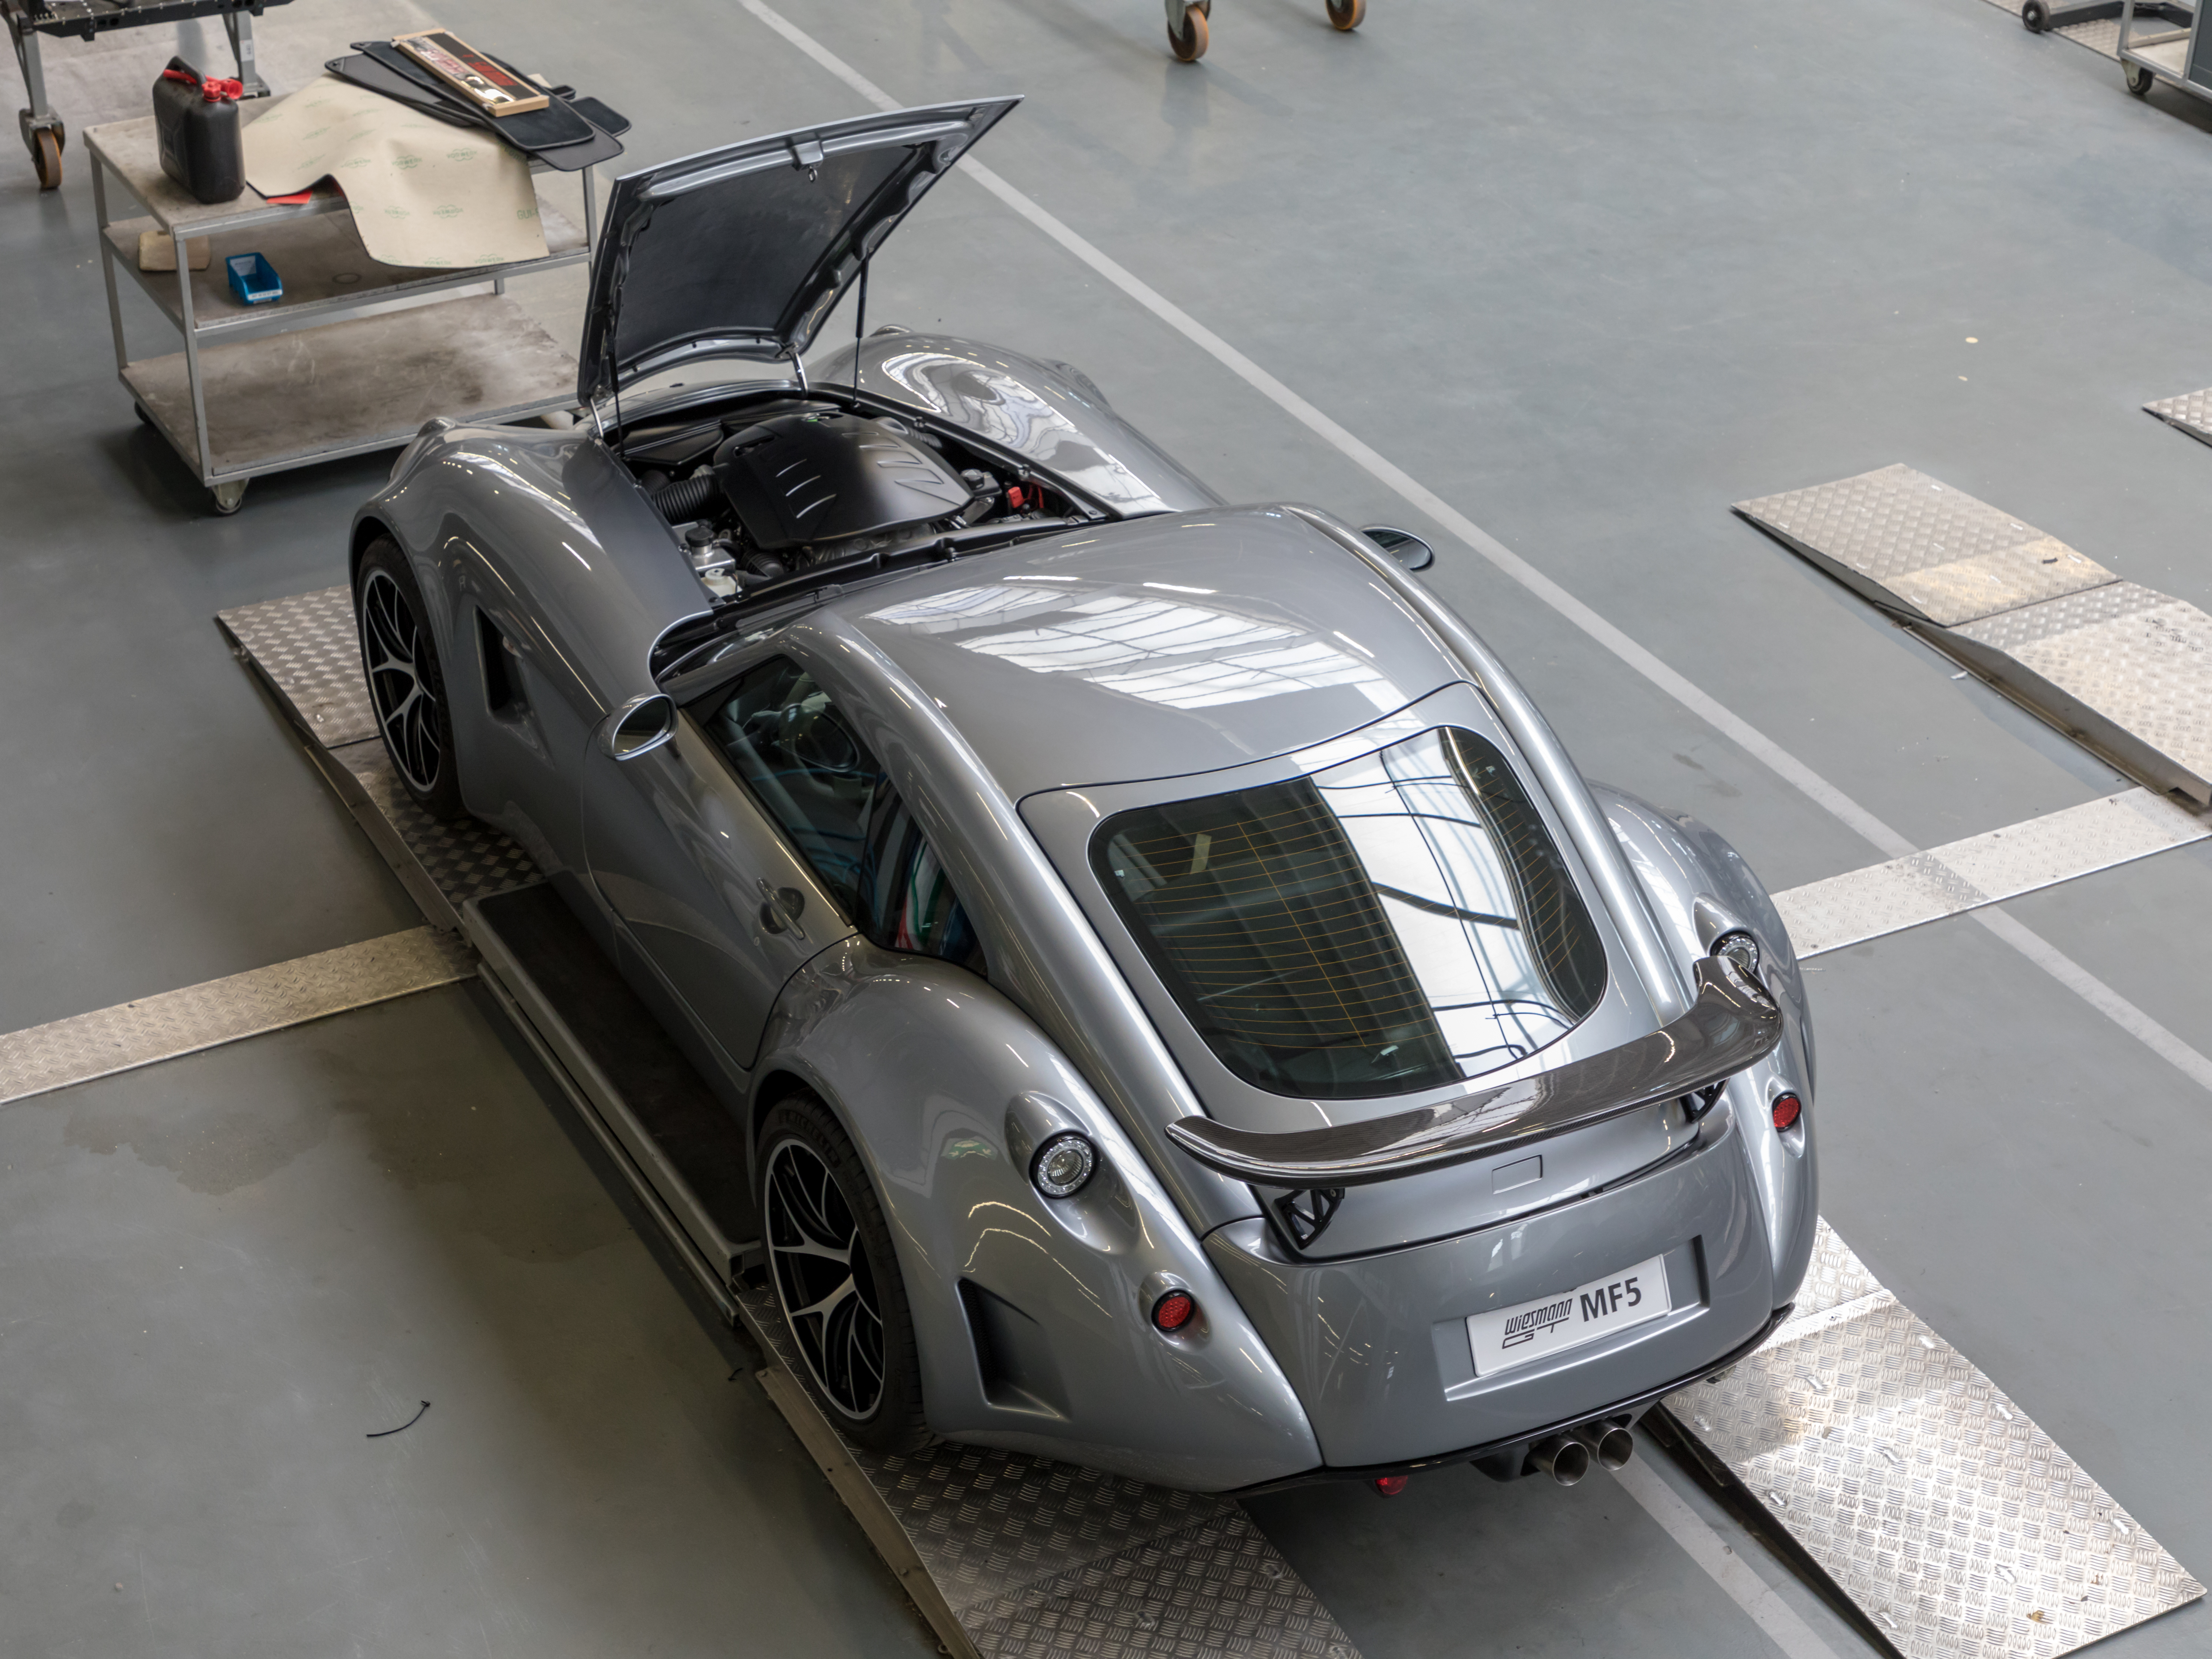 MF5 at Wiesmann Sports Cars, Dülmen, North Rhine-Westphalia, Germany (2018) German Wiesmann GT MF5 (2018) bei Wiesmann Sports Cars, Dülmen, Nordrhein-Westfalen